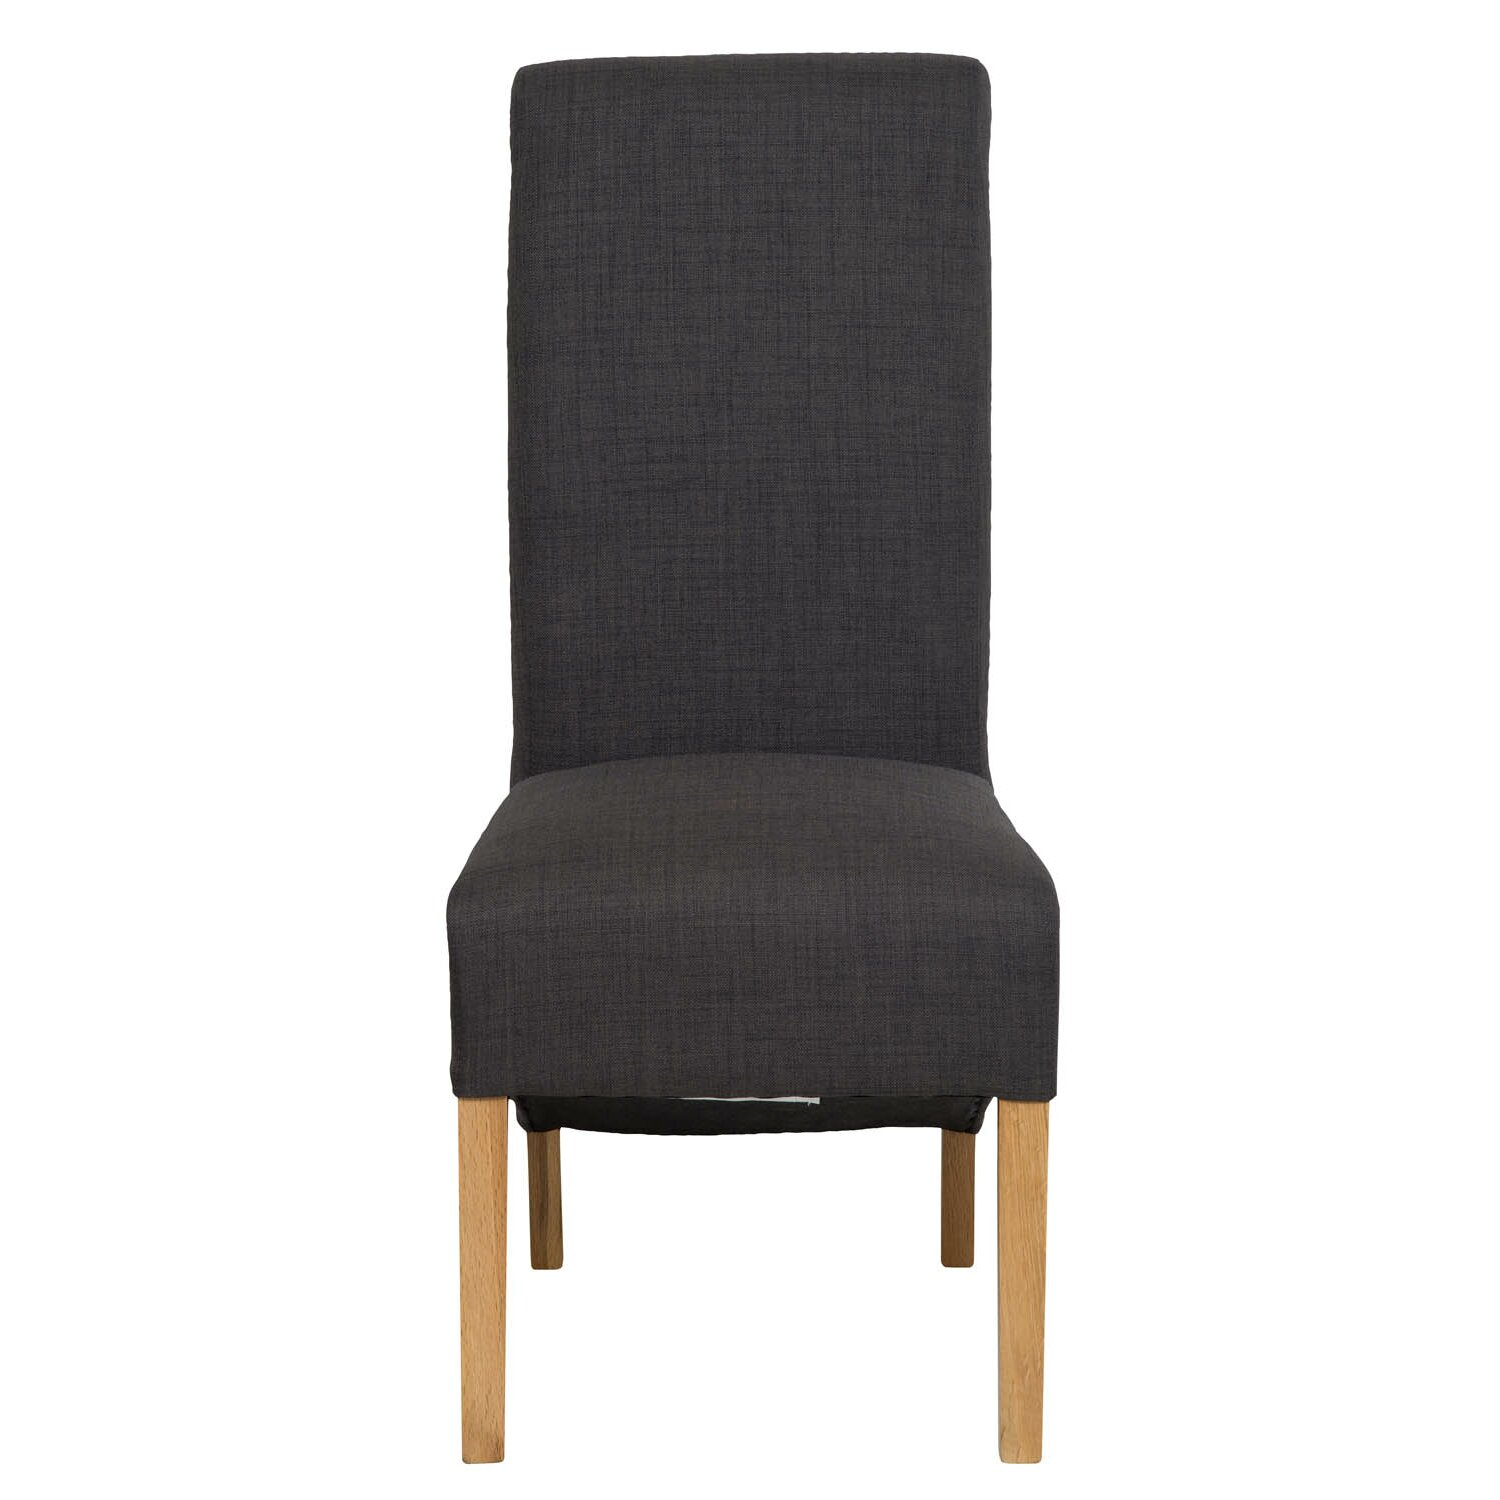 Hallowood furniture oak upholstered dining chair wayfair uk for Oak dining chairs